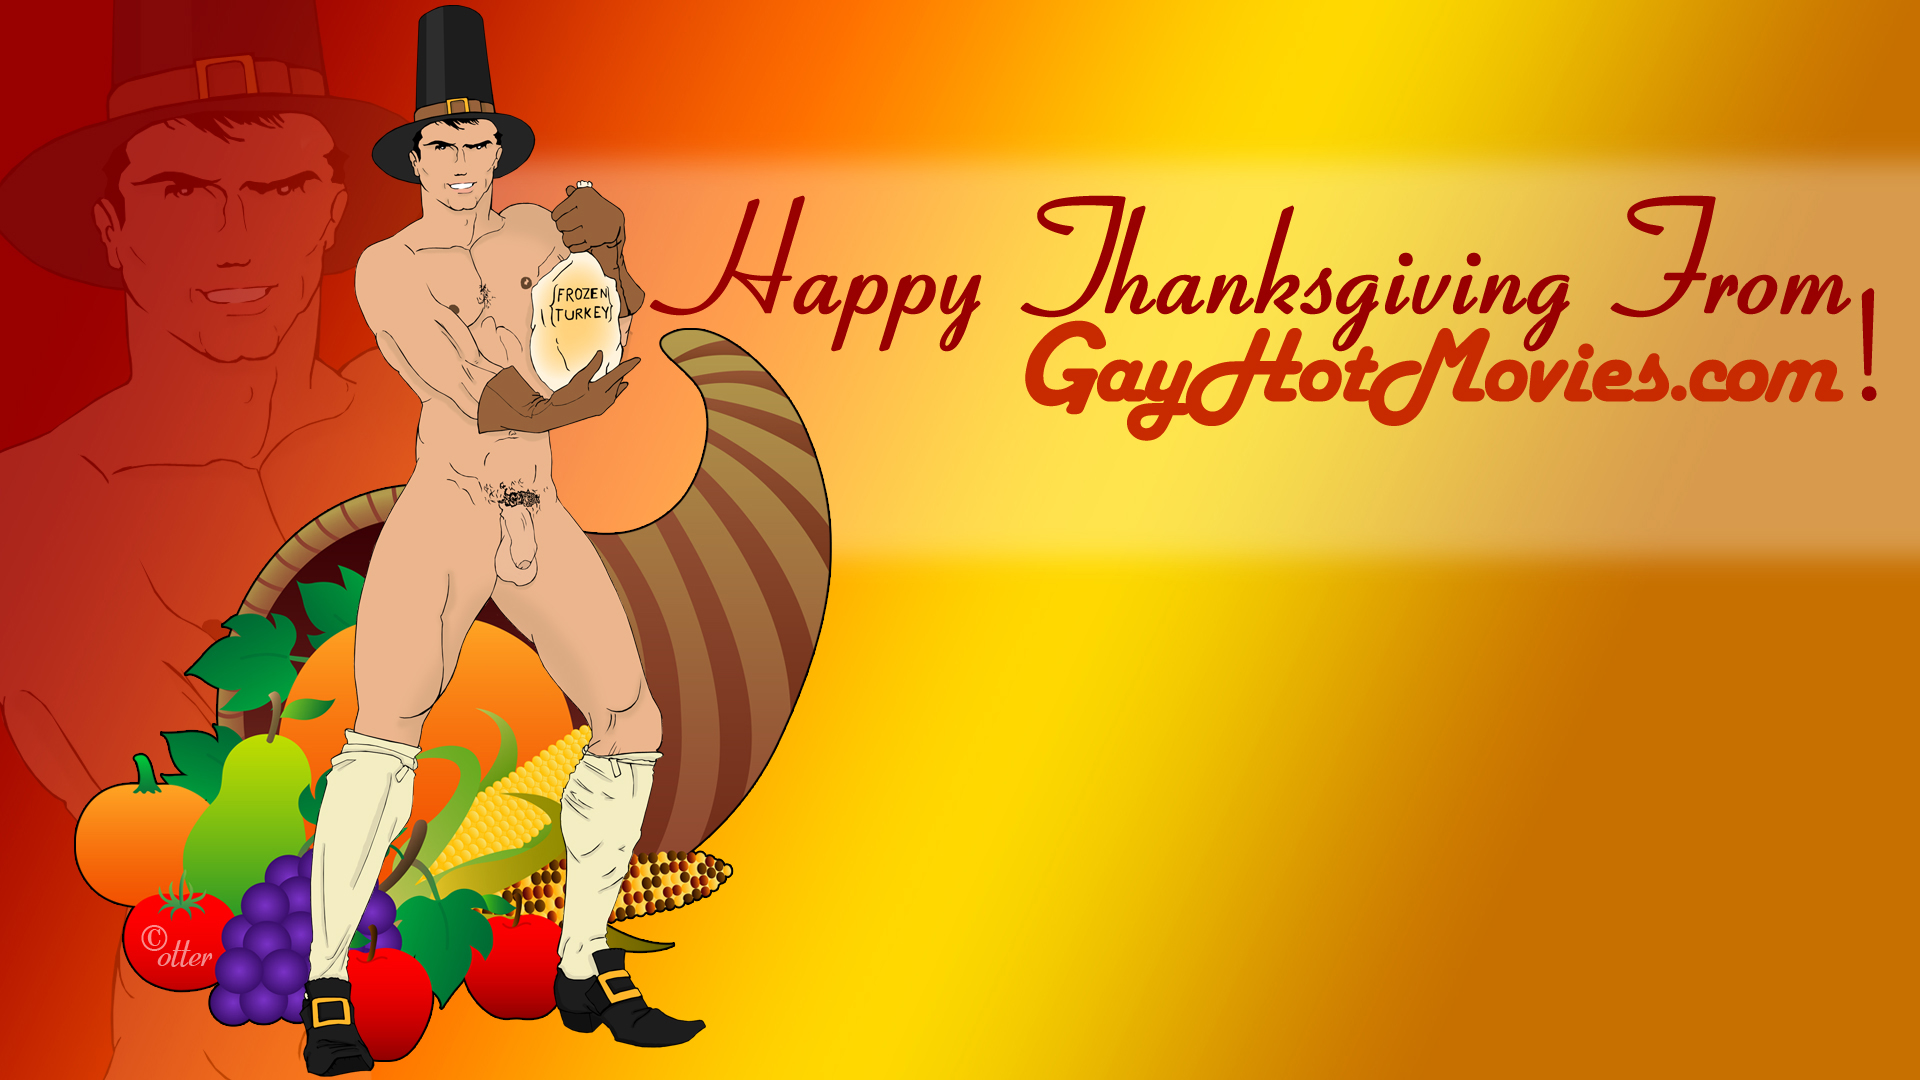 Happy Thanksgiving From GayHotMovies.com & The Otter!